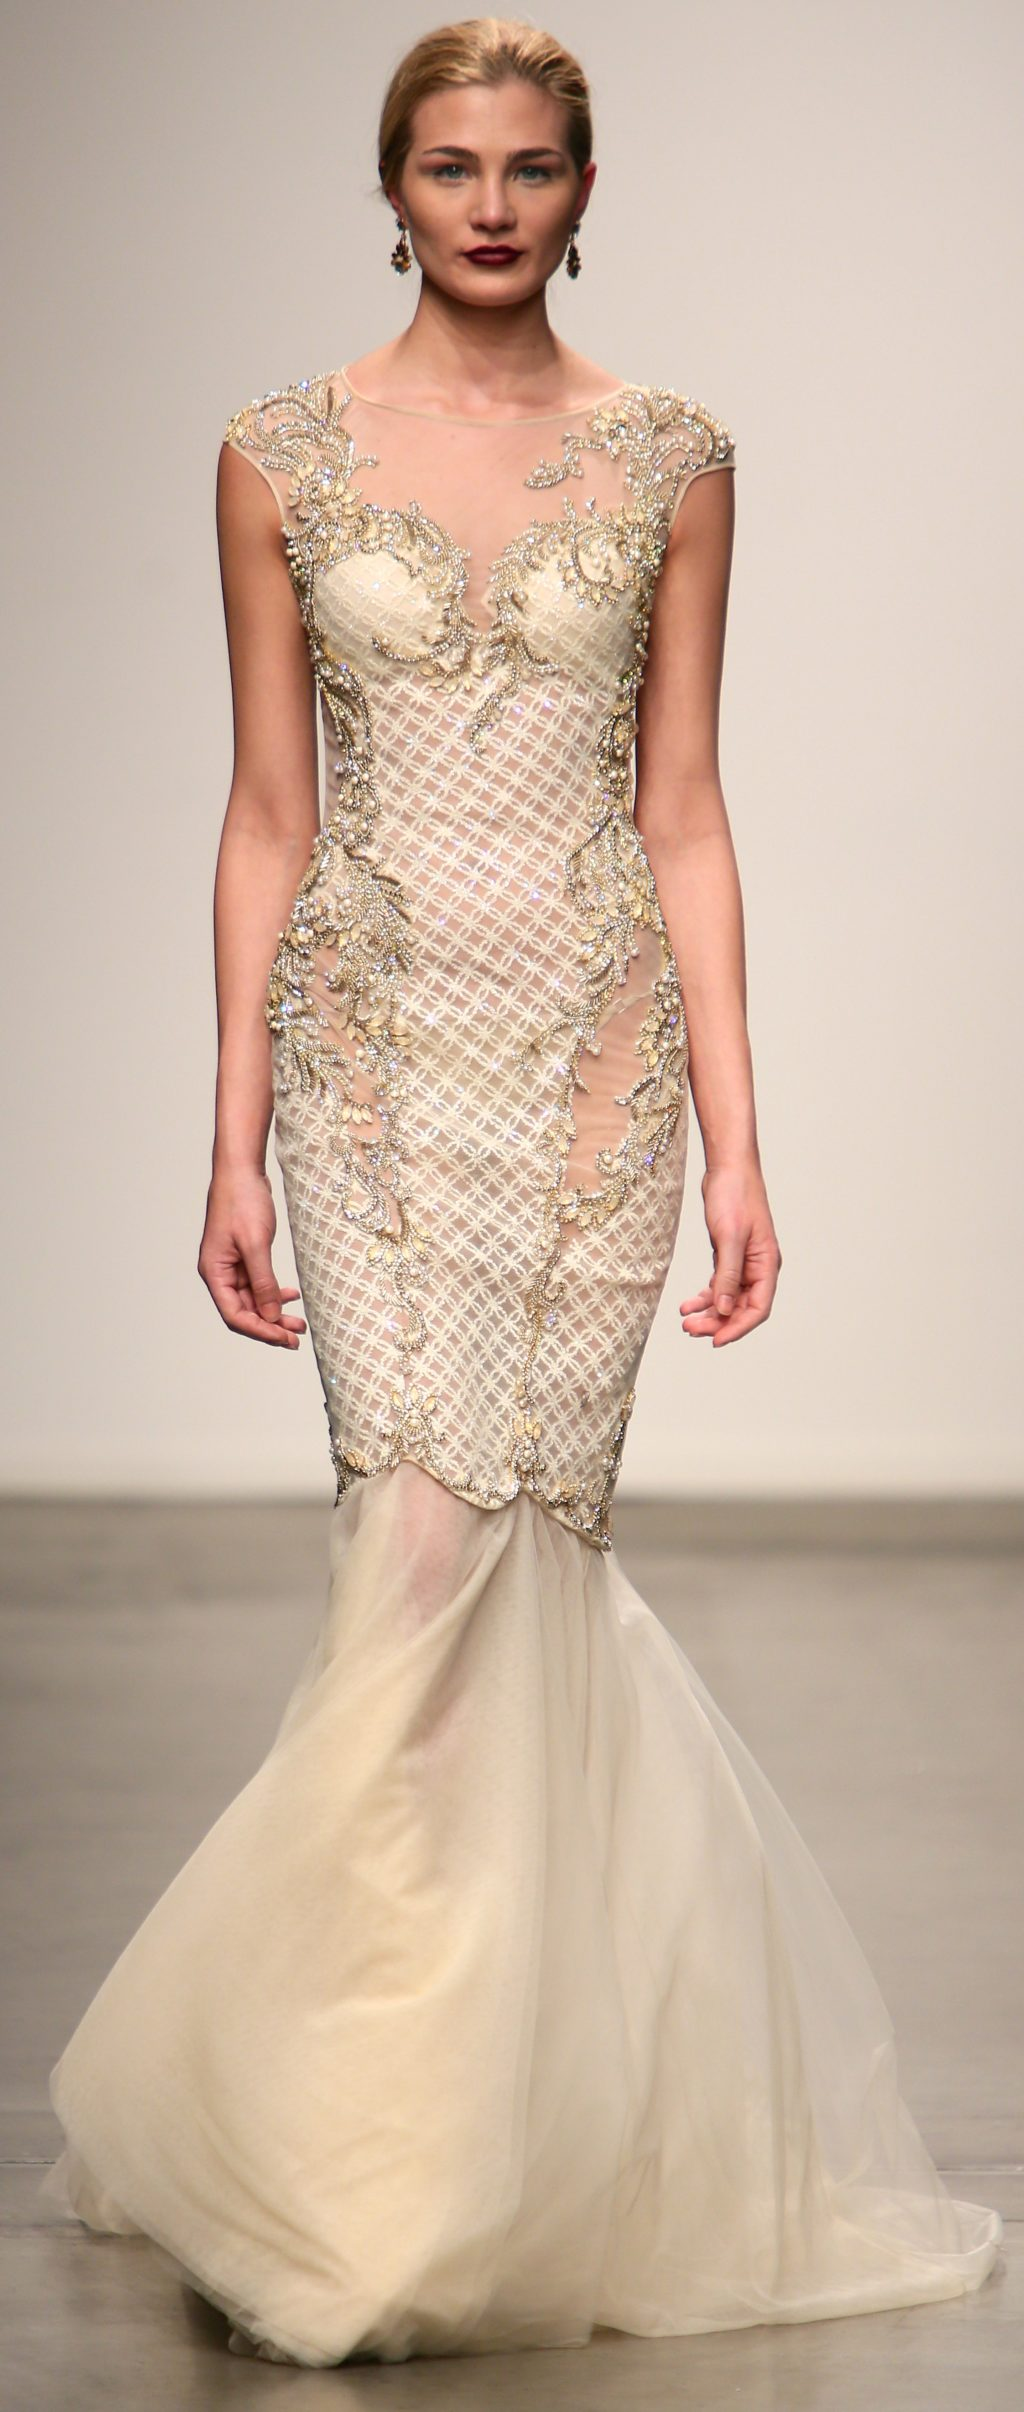 Facts About Lucille Ball Dany Tabet Nolcha Fashion Week Www Whatthedoost Com